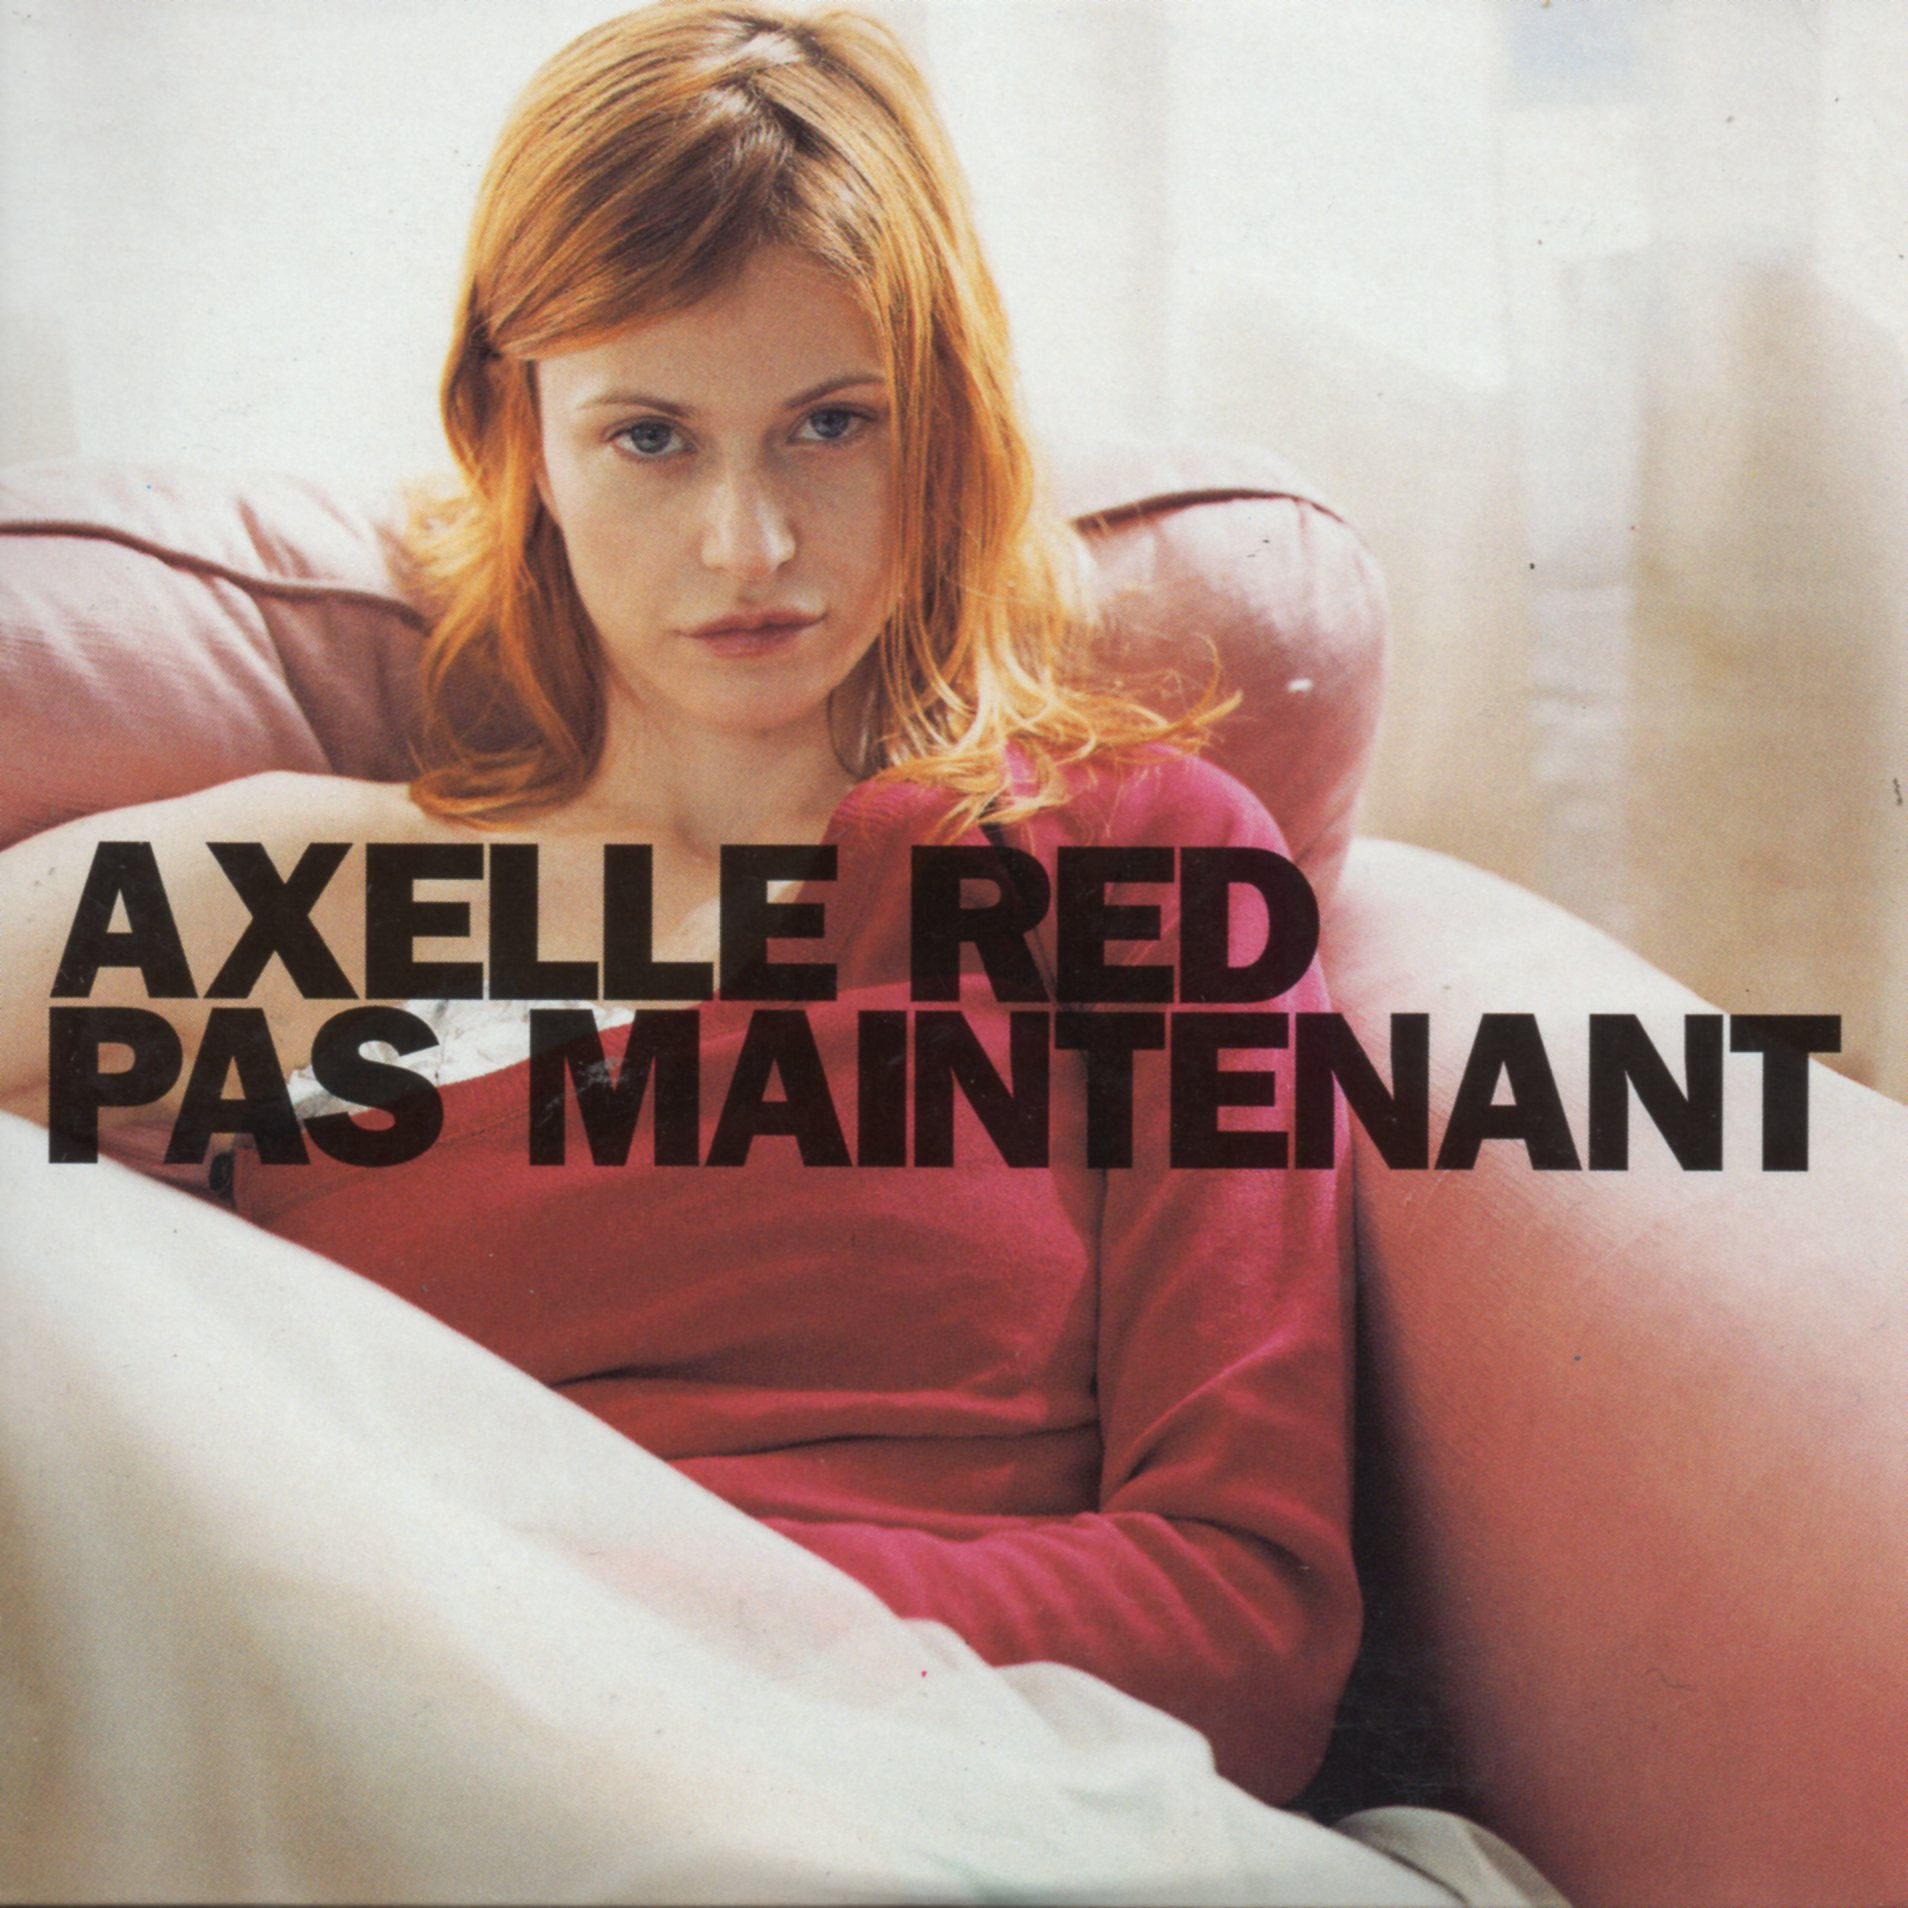 AXELLE RED - Pas maintenant Promo 1-Track CARD SLEEVE - CD single